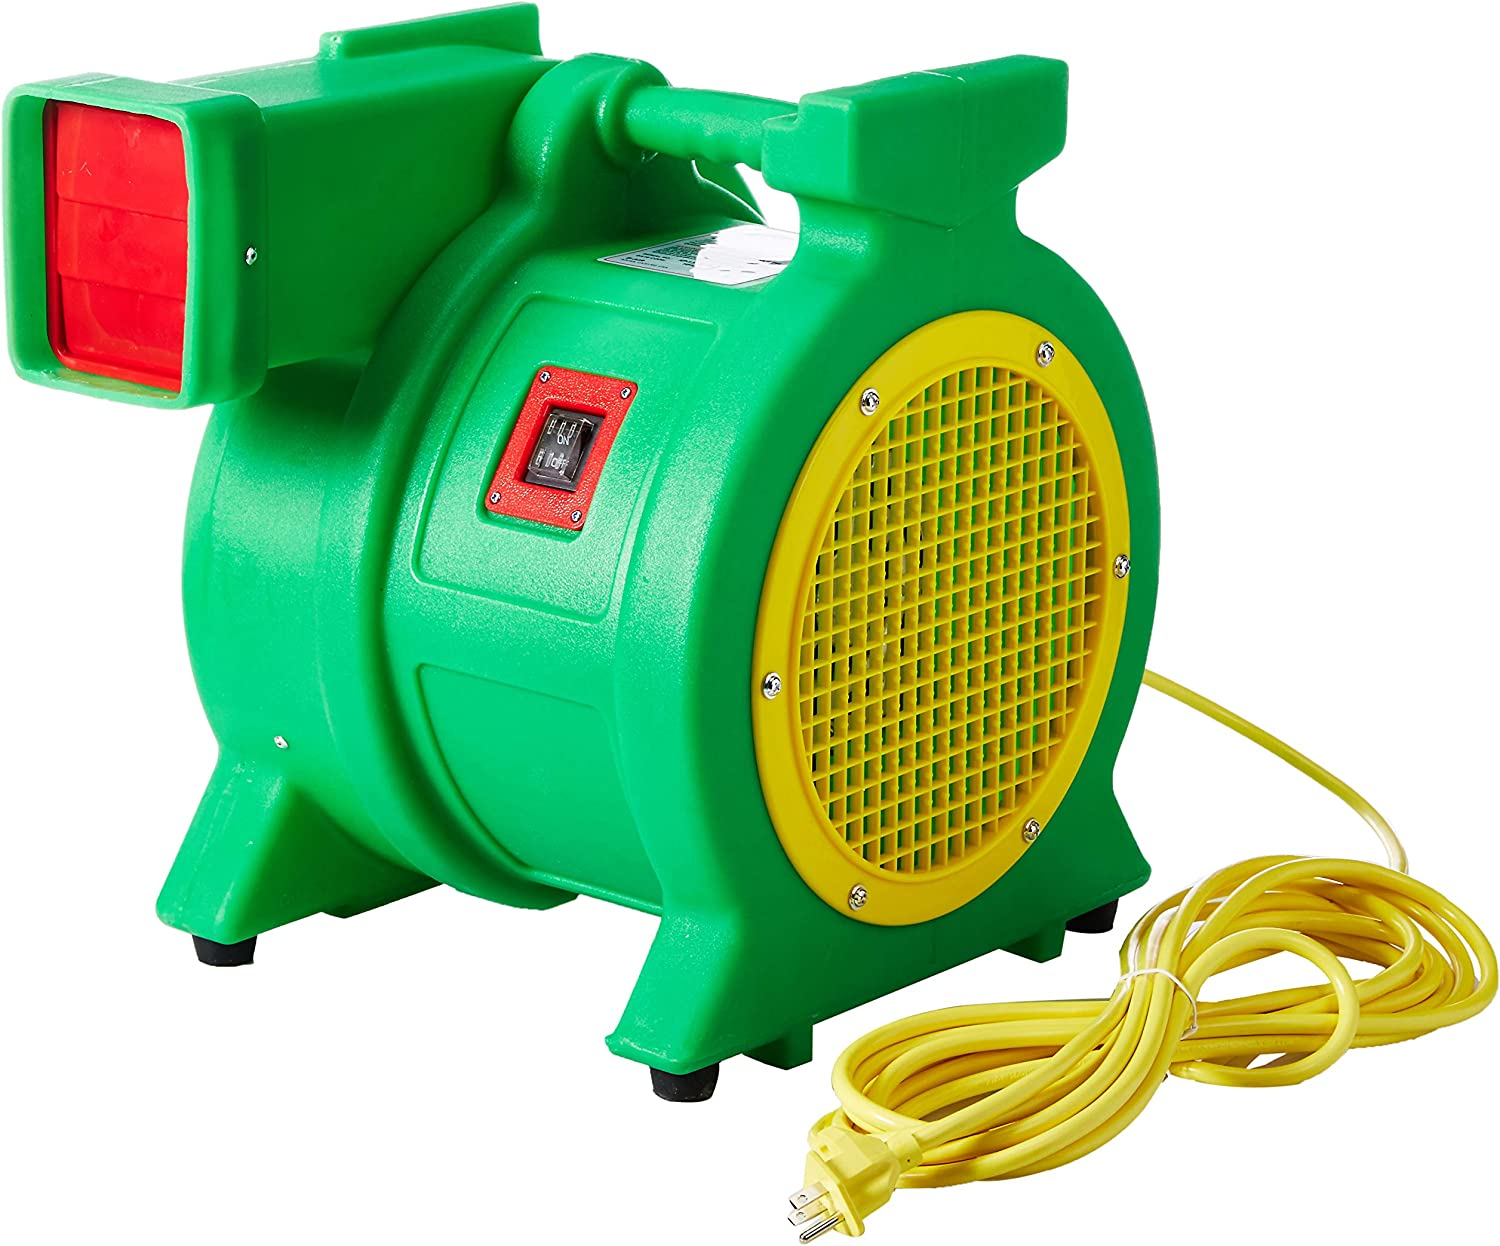 B-Air Kodiak 1.5 HP ETL Air Blower | Powerful Bounce House Blower Fan for Large Inflatable Bounce House, Bouncy Castle and Slides